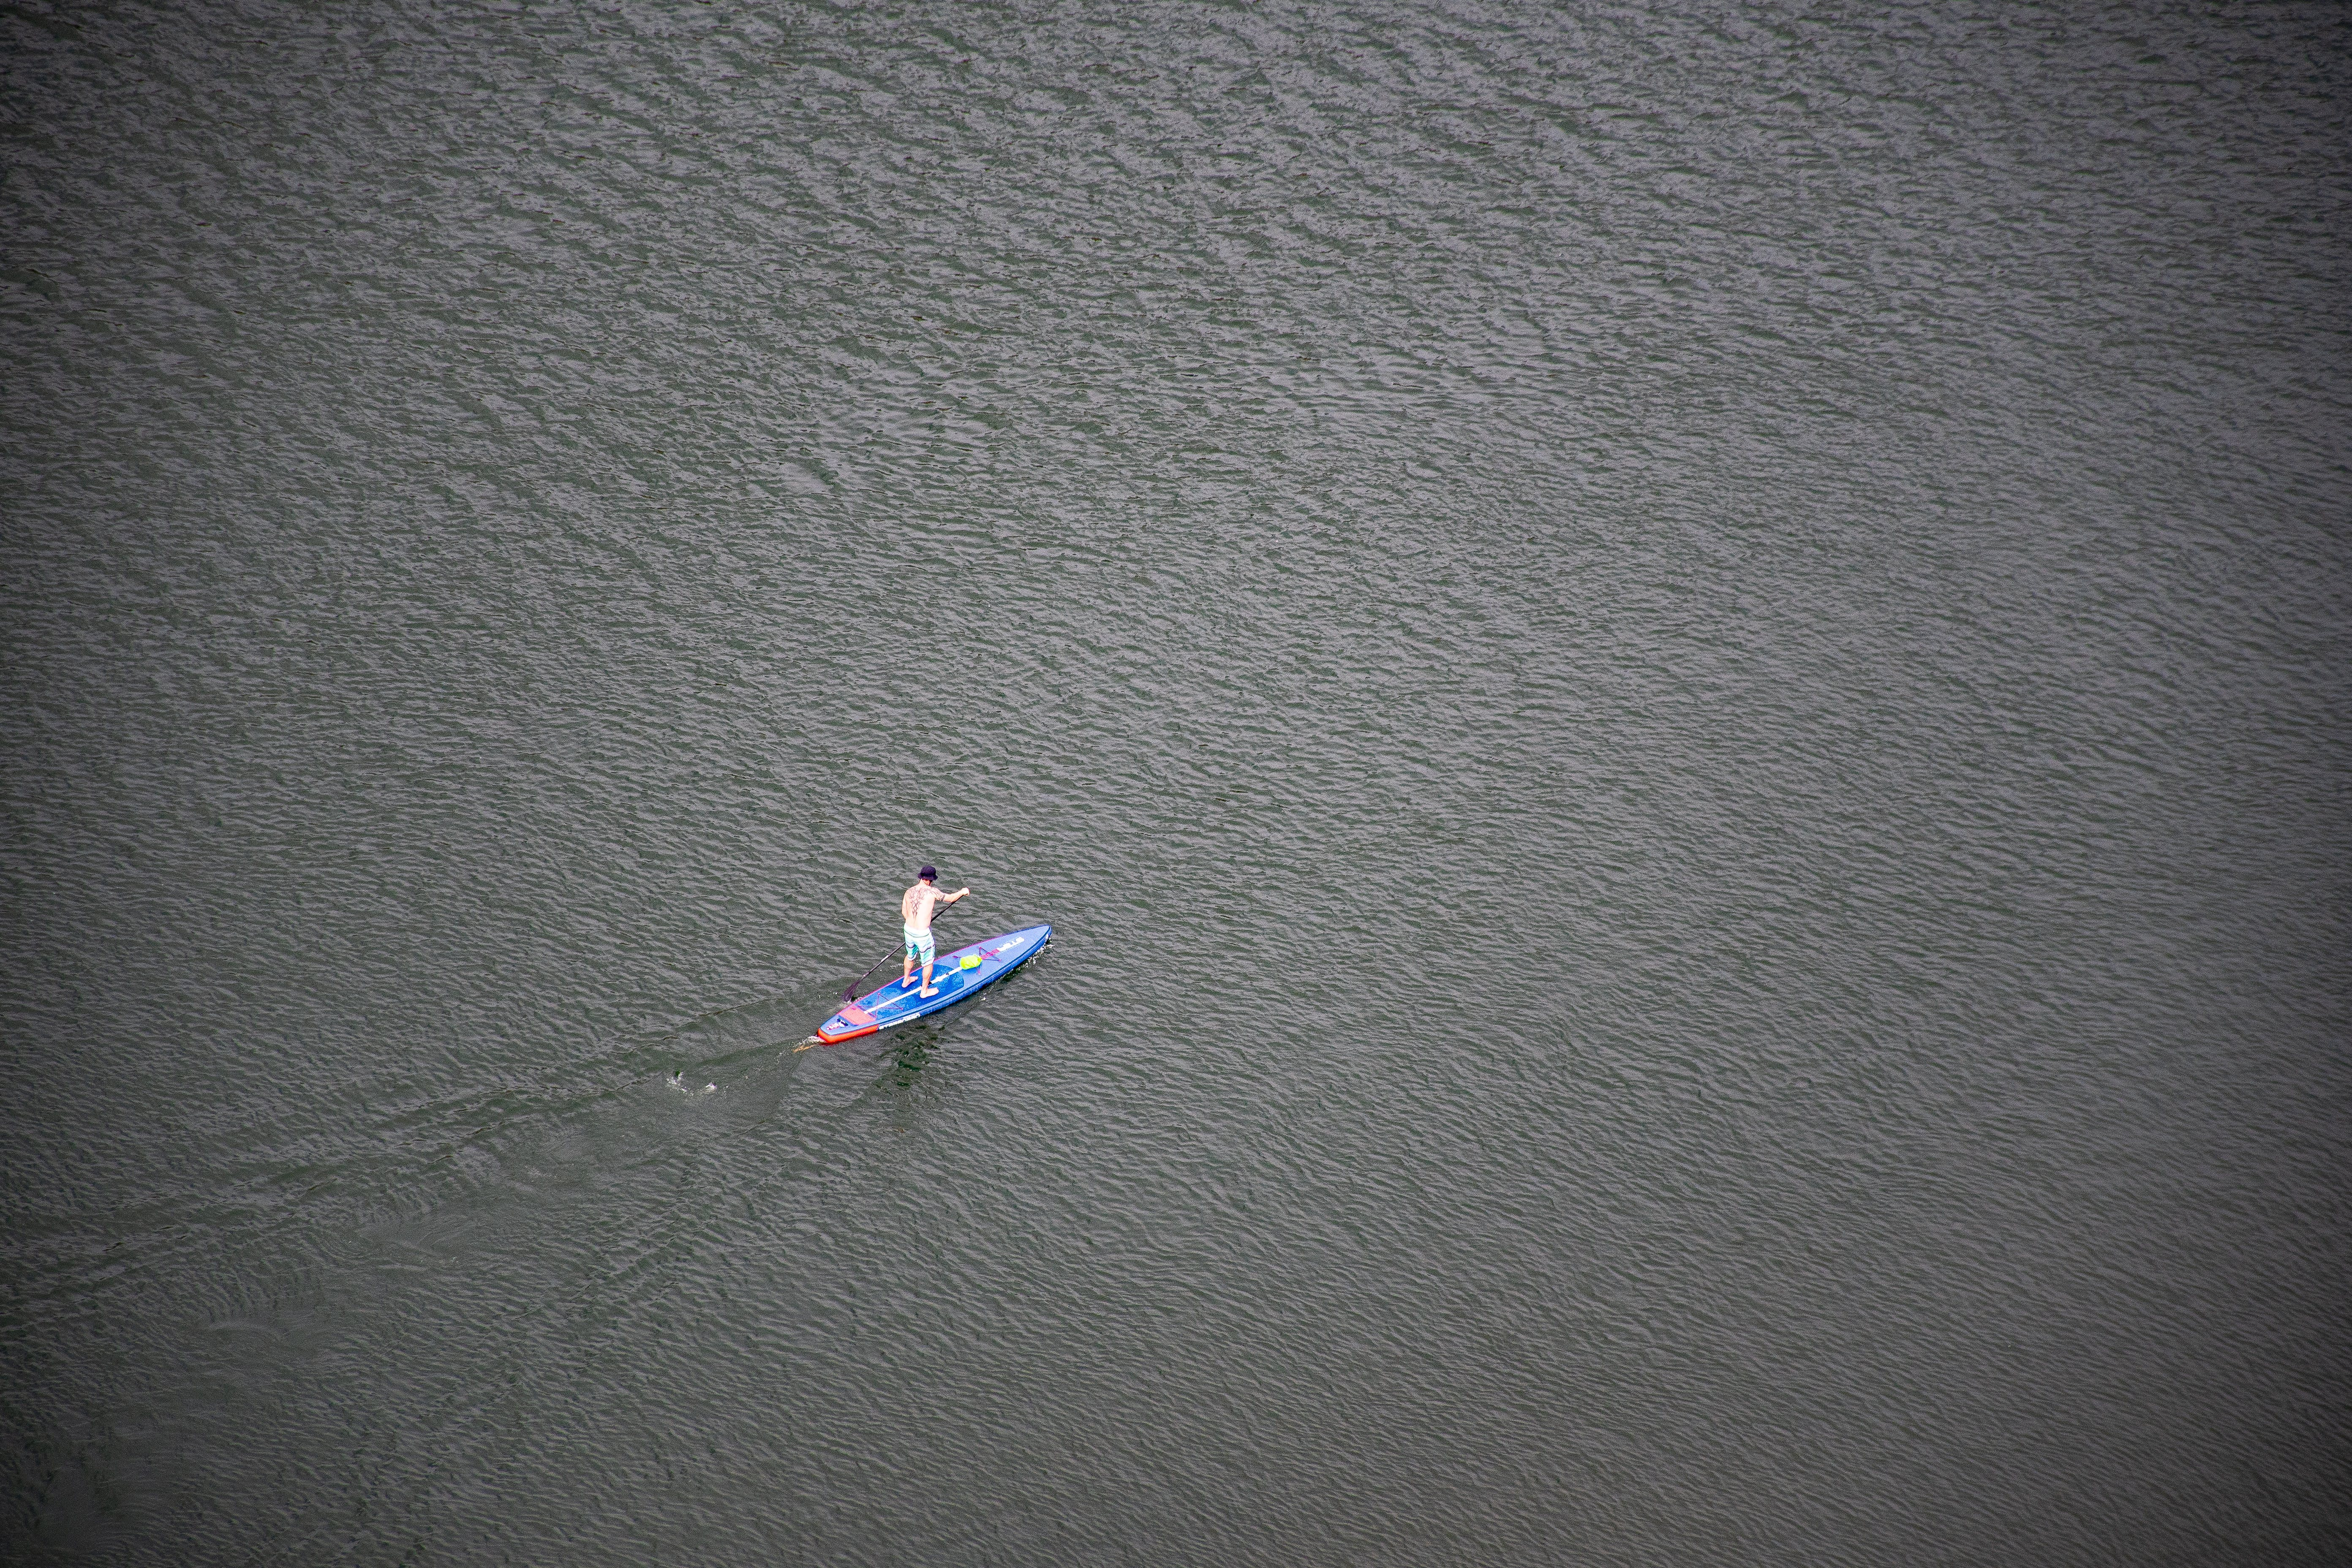 Person Riding Blue and Red Paddleboard on Water